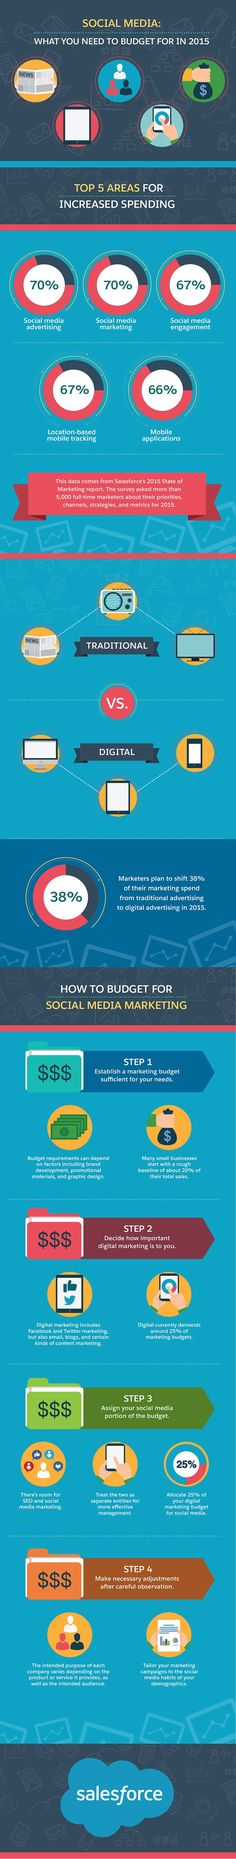 How to budget for social media marketing - infographic